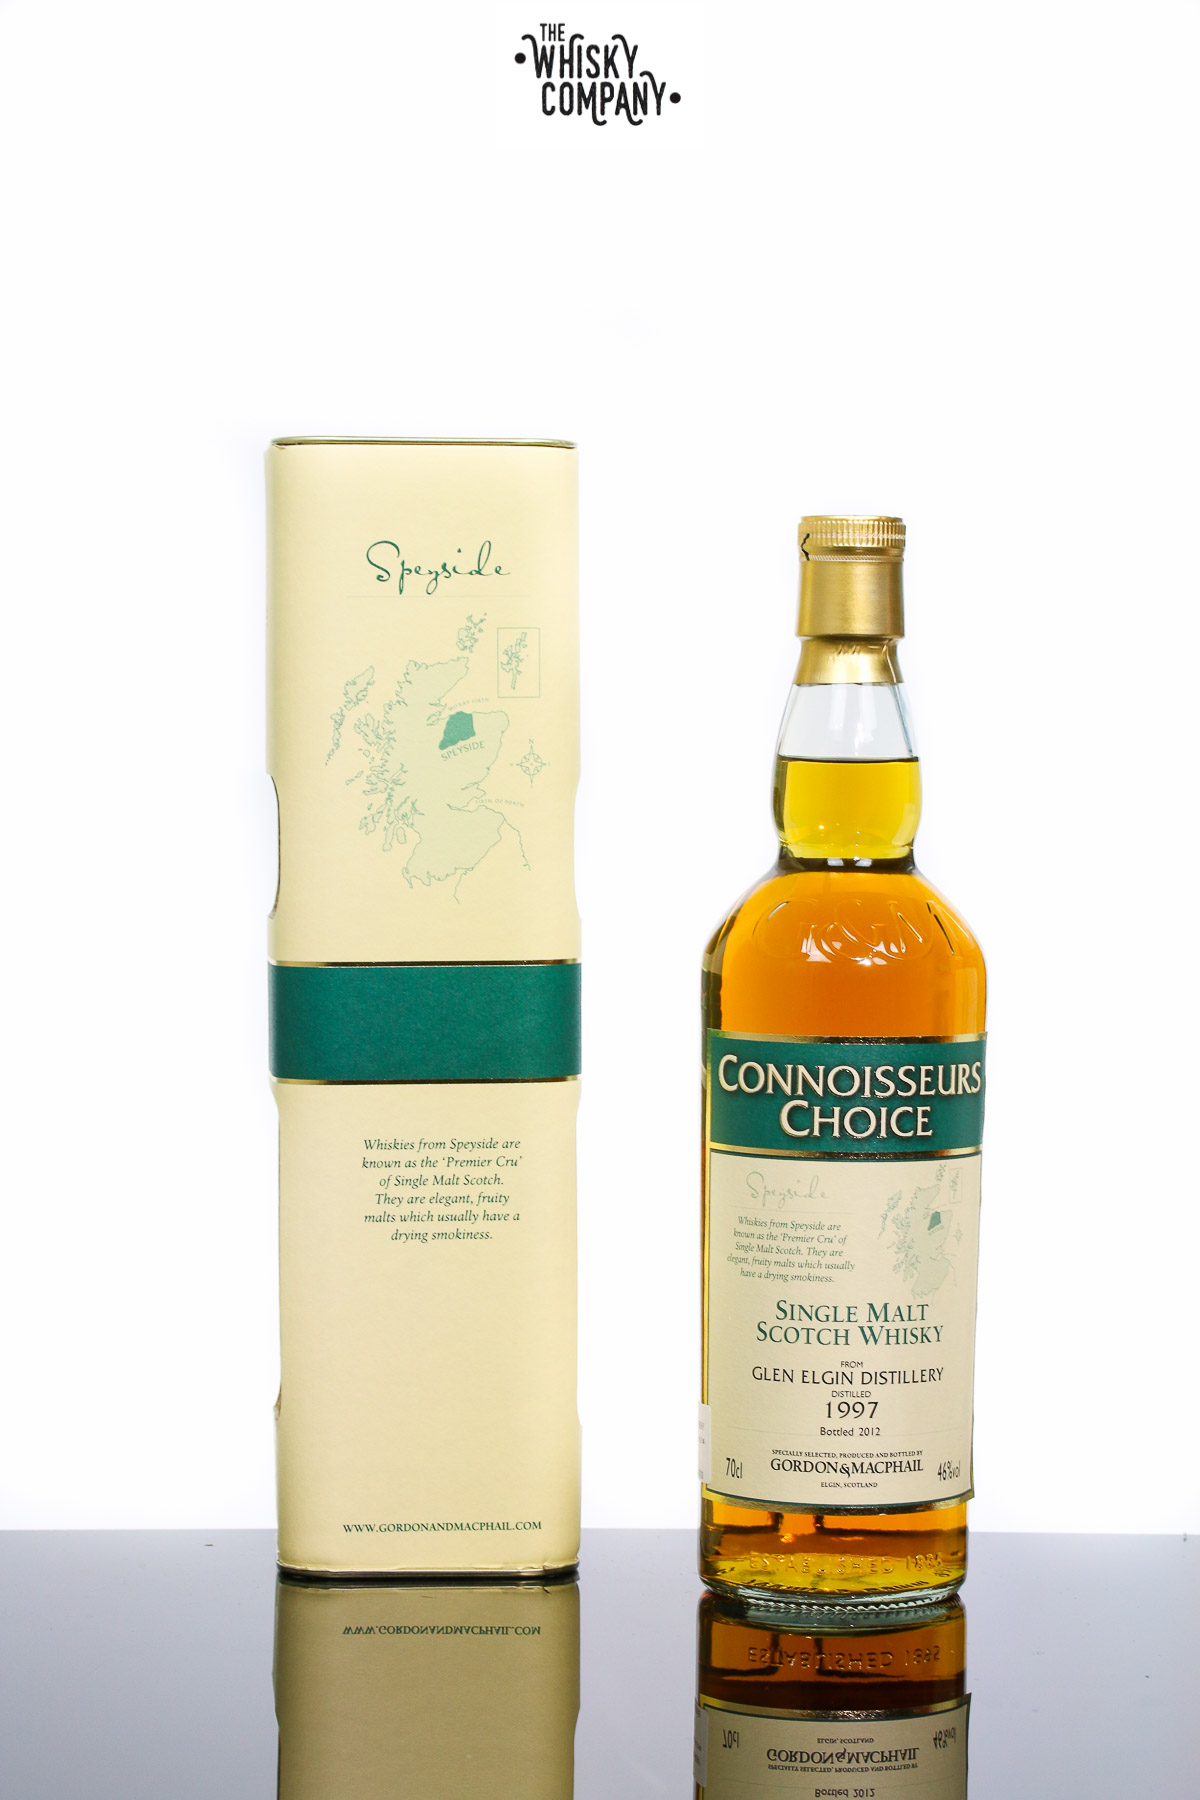 Gordon & MacPhail 1997 Glen Elgin Speyside Single Malt Scotch Whisky